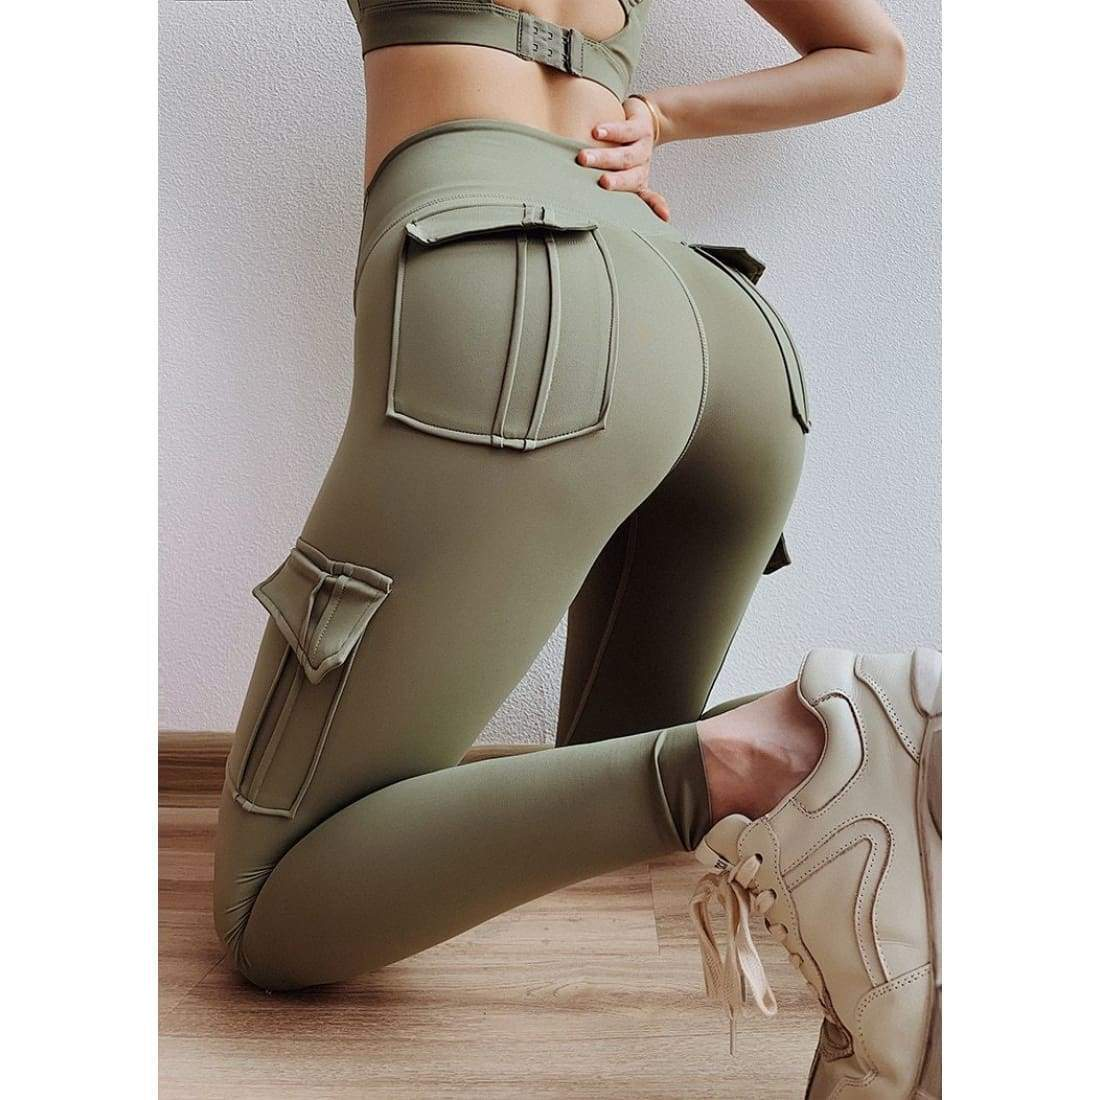 Sculpt cargo leggings - L / Army Green - high waist pockets yoga sport workout running